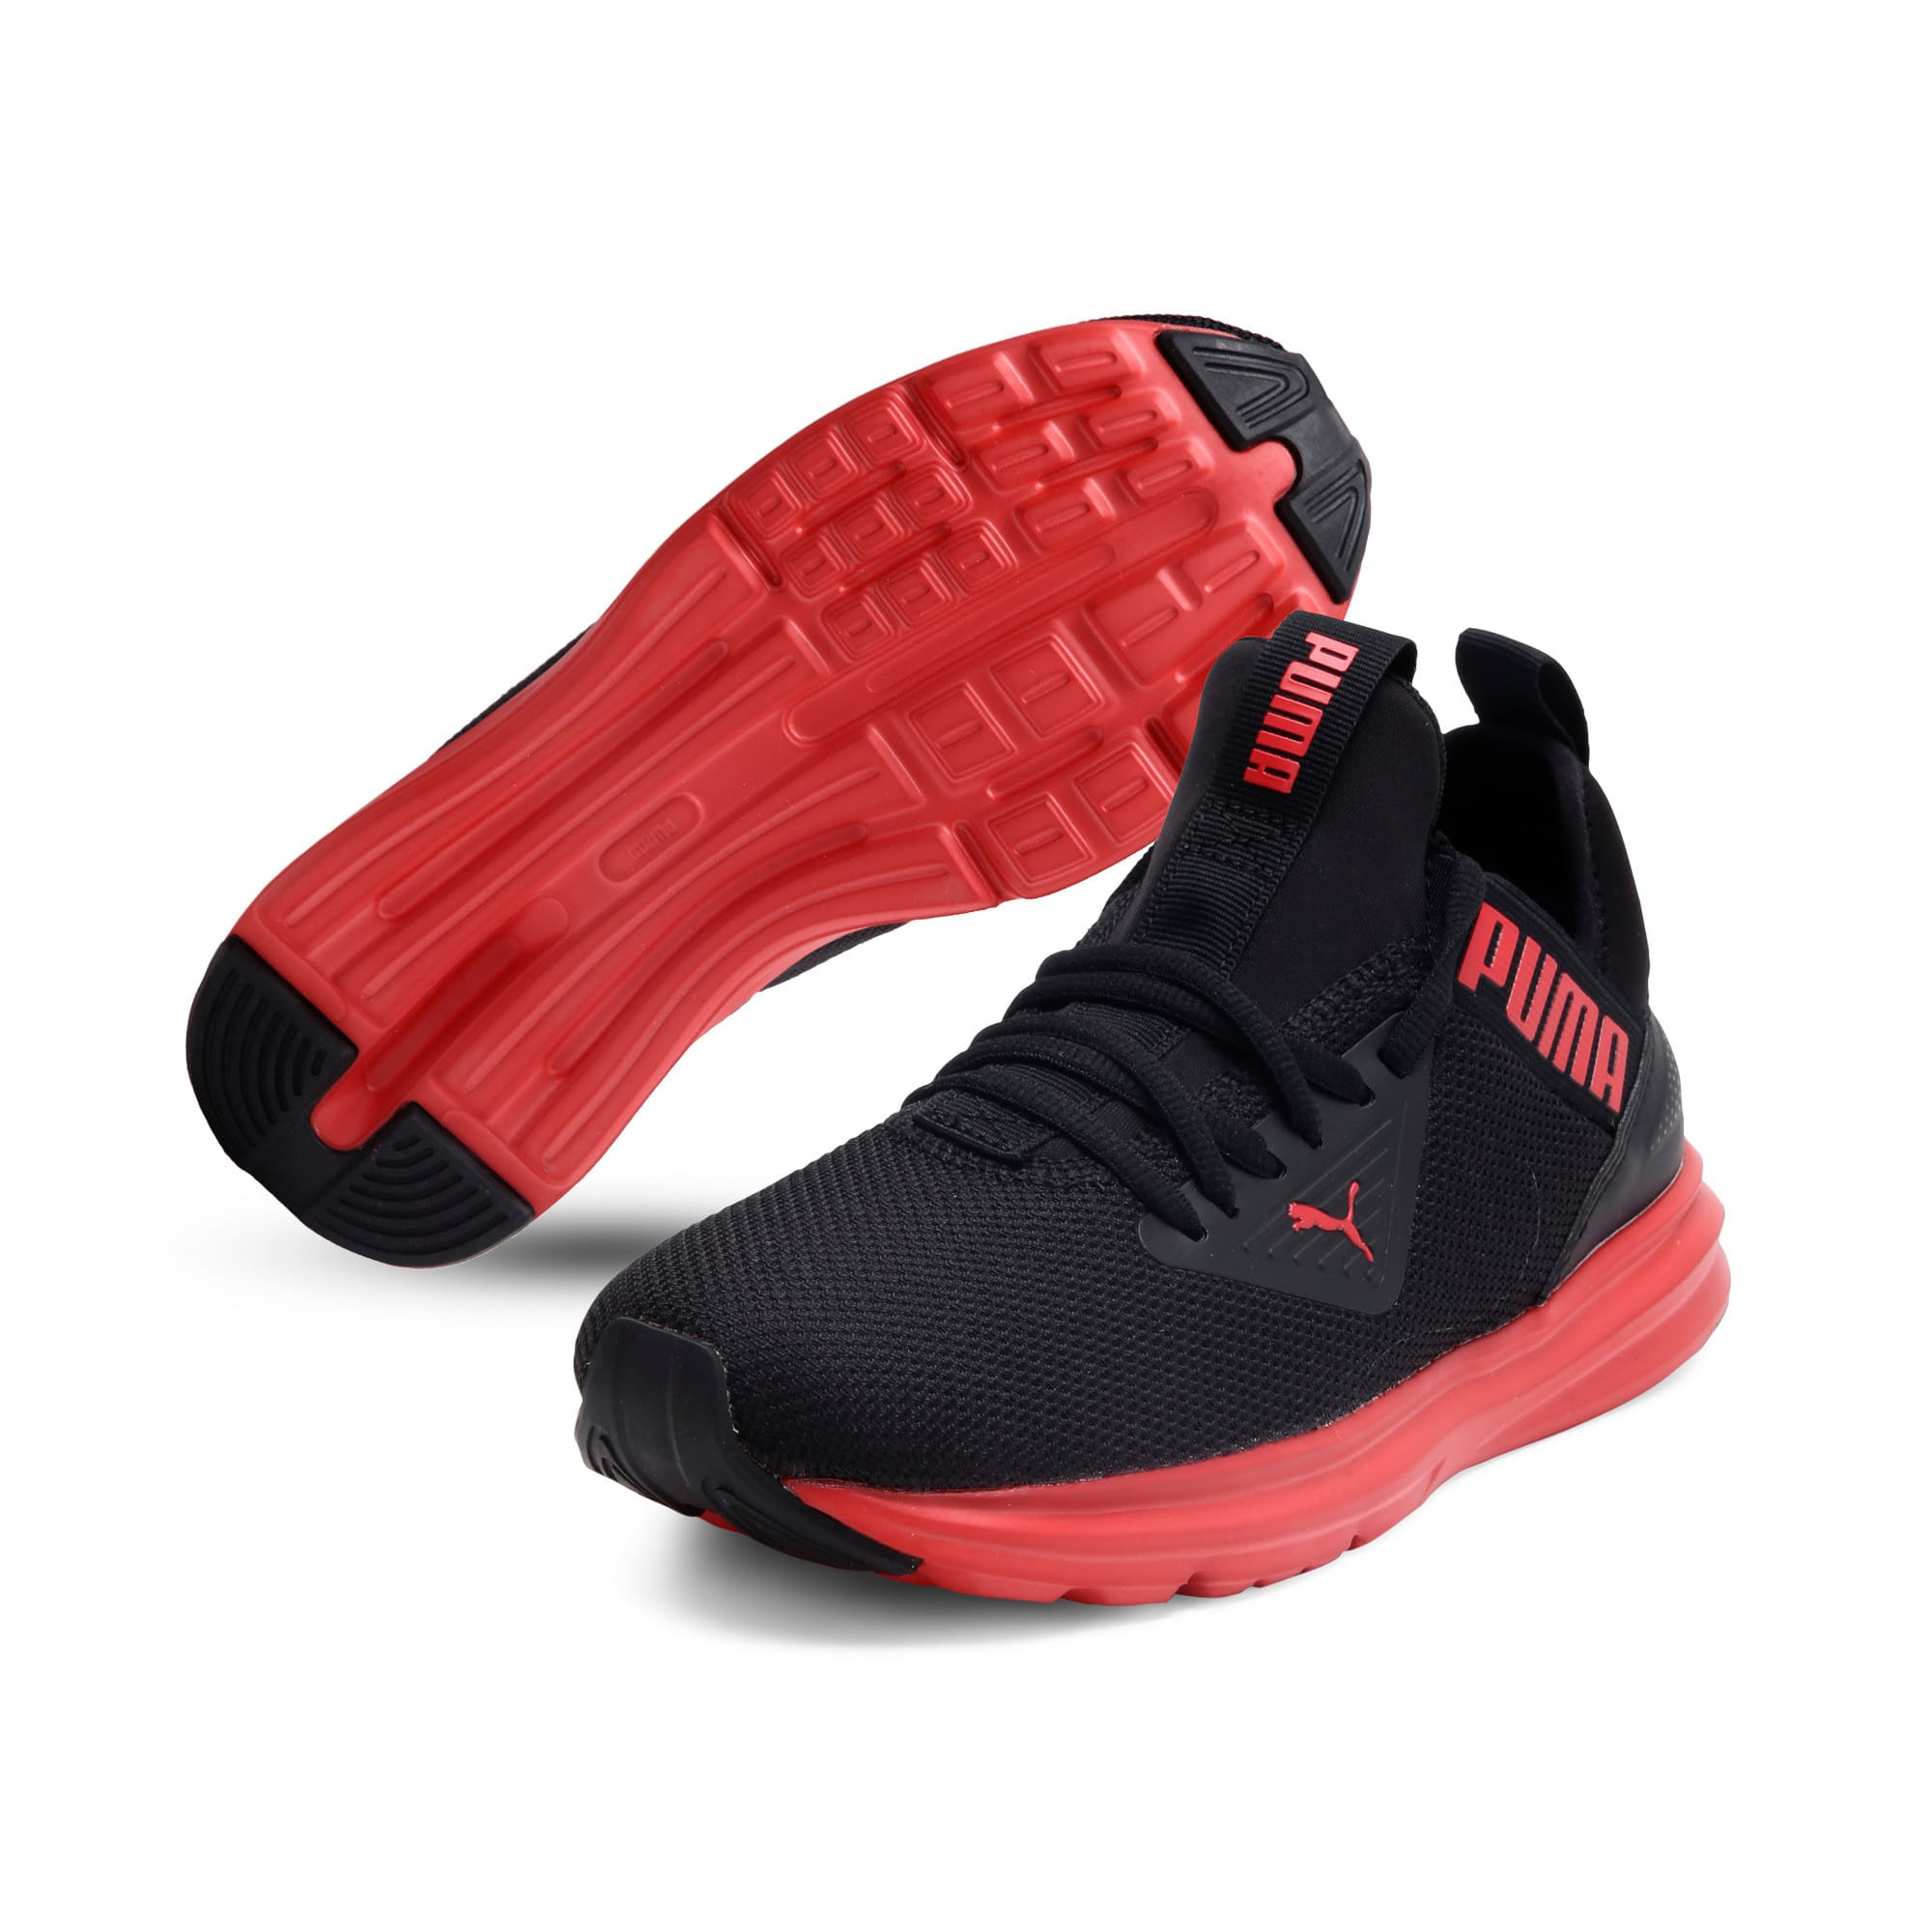 Thumbnail 2 of Enzo Beta SoftFoam Youth Trainers, Puma Black-High Risk Red, medium-IND